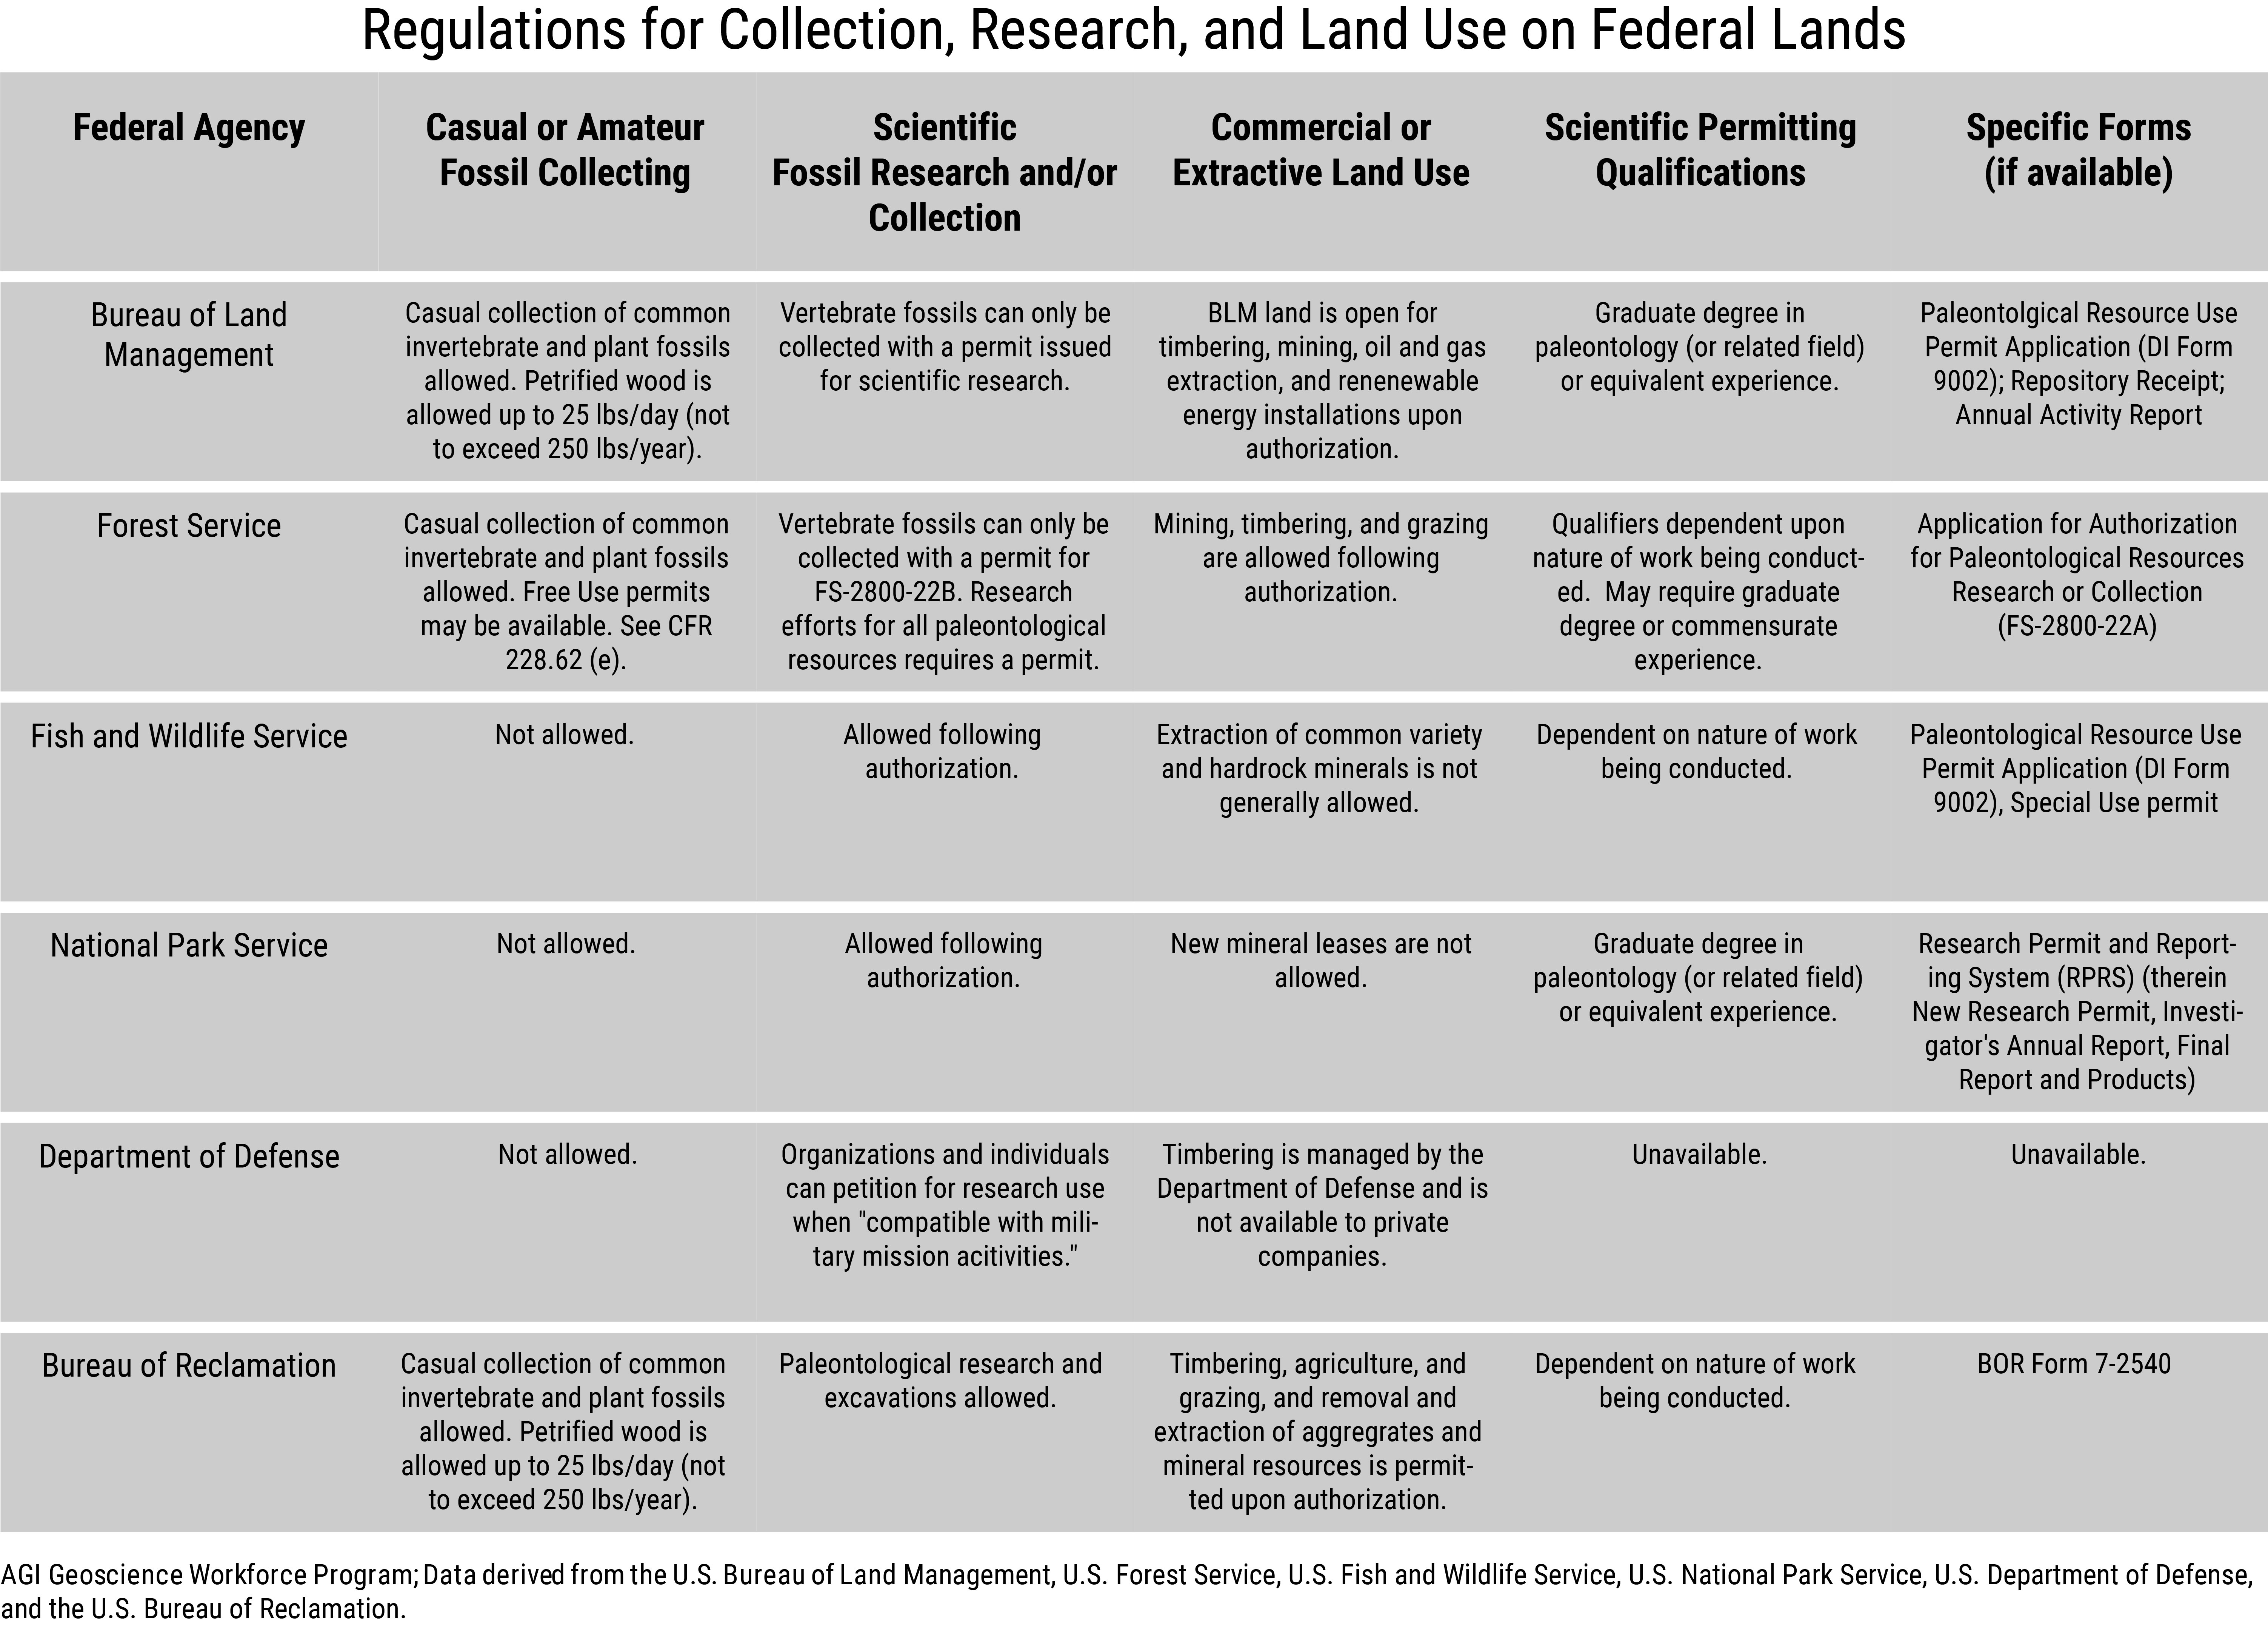 Geoscience Currents, Data Brief 2019-006. Table 1: Regulations for Collection, Research and Land Use on Federal Lands (credit: AGI Geoscience Workforce Program)